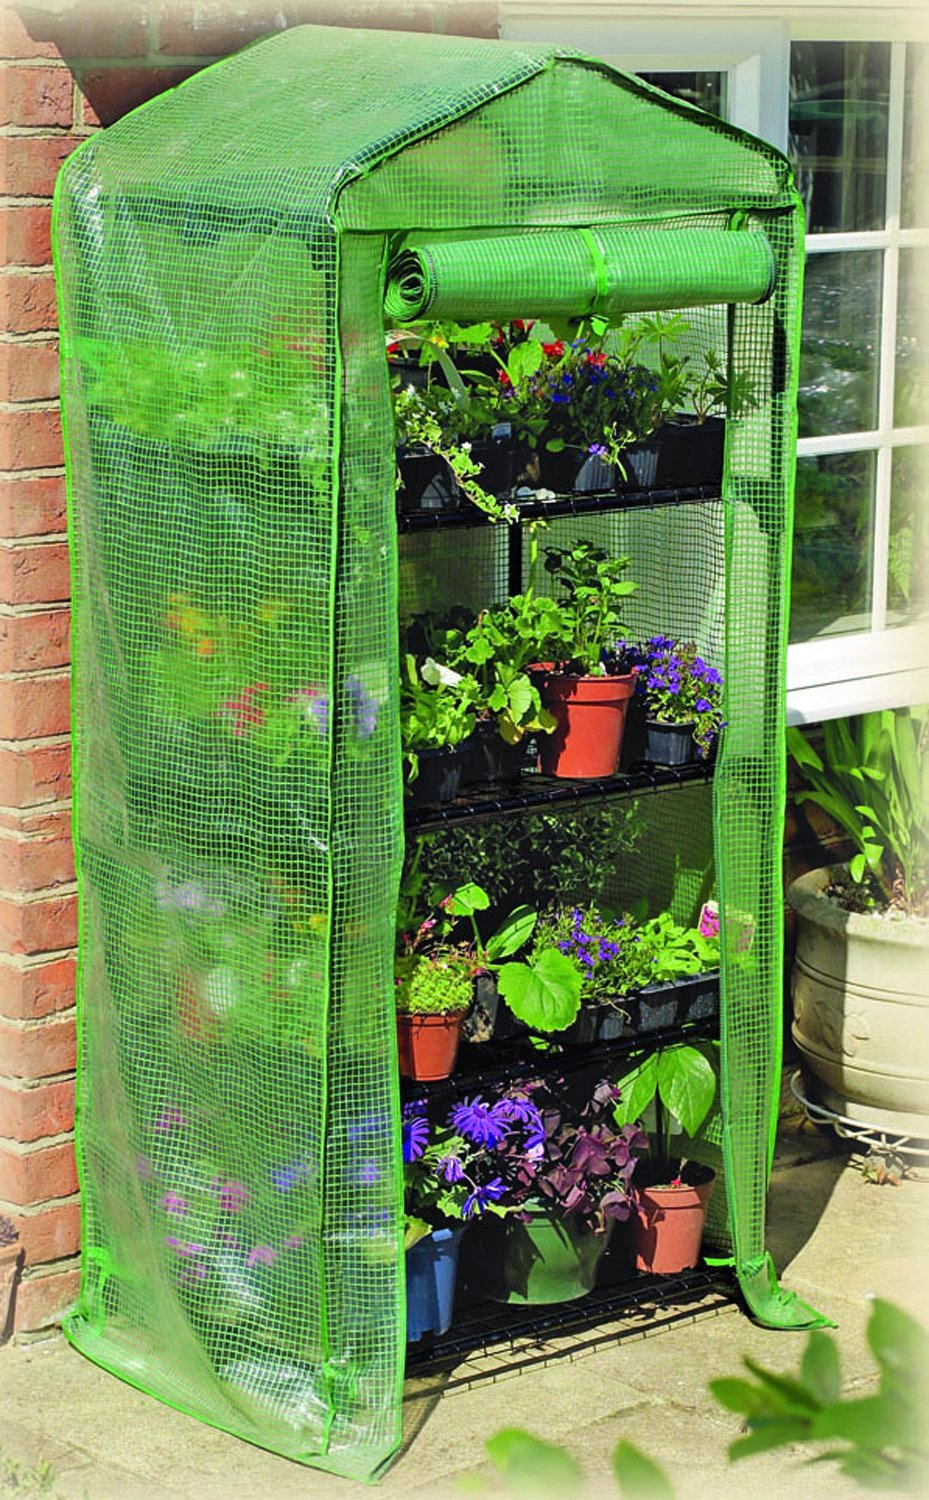 Mini Greenhouse with Shelves for Starting Butterfly Plants Indoors, in the garage, or outside.